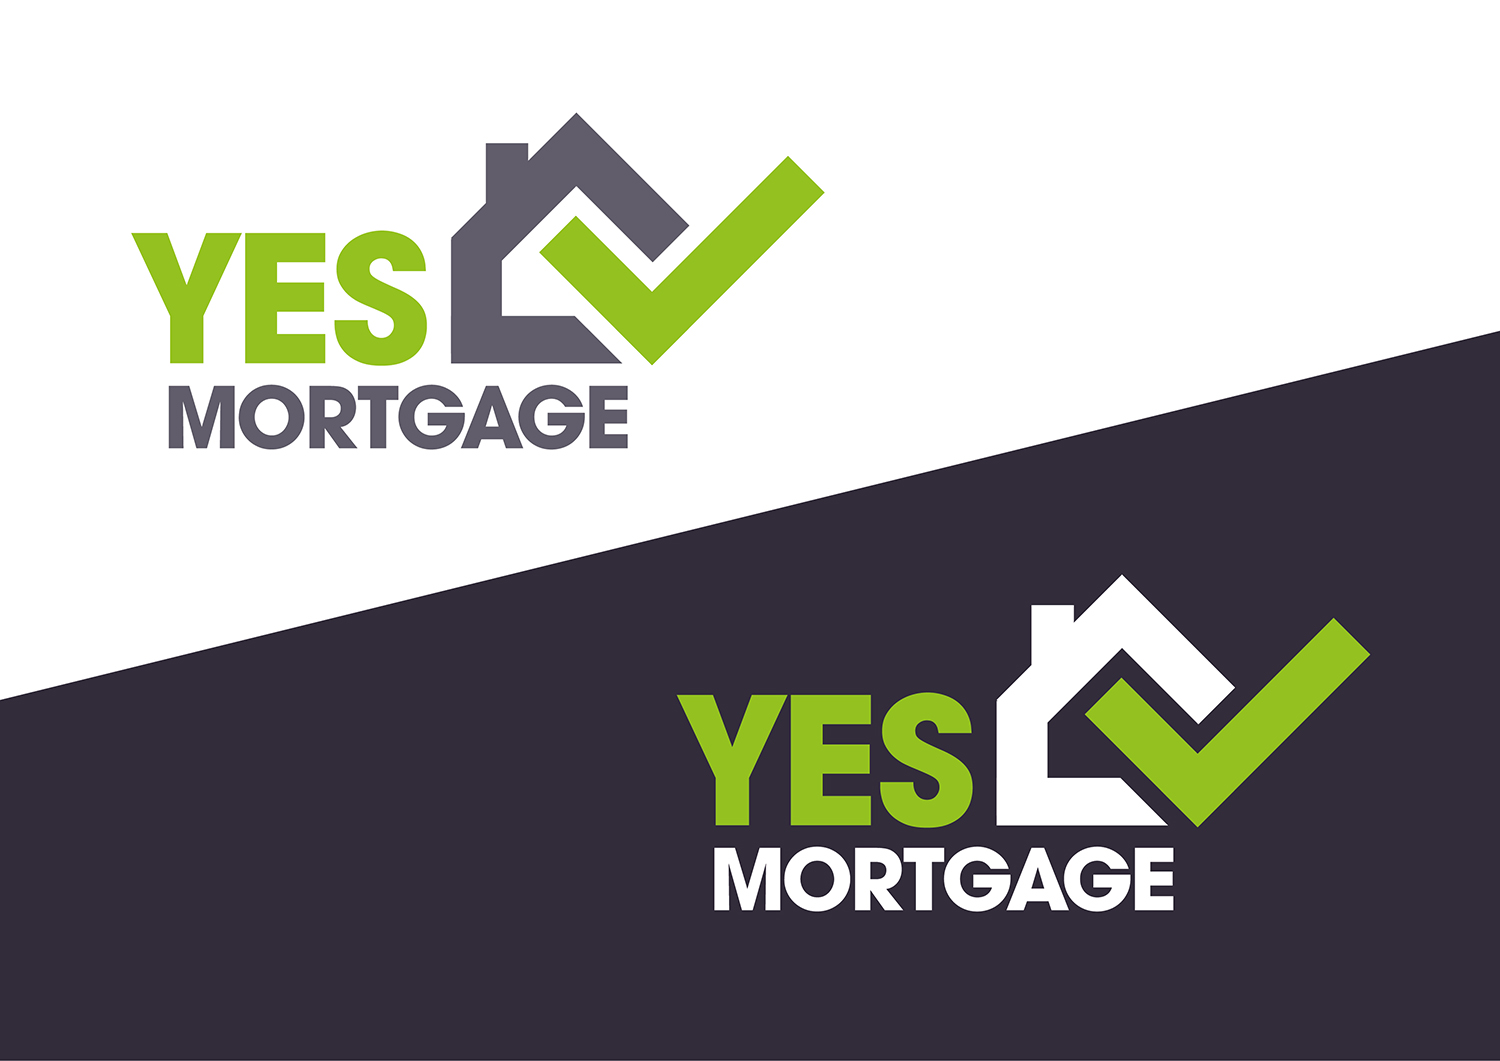 Conservative, Bold Logo Design for Yes Mortgage by Channel